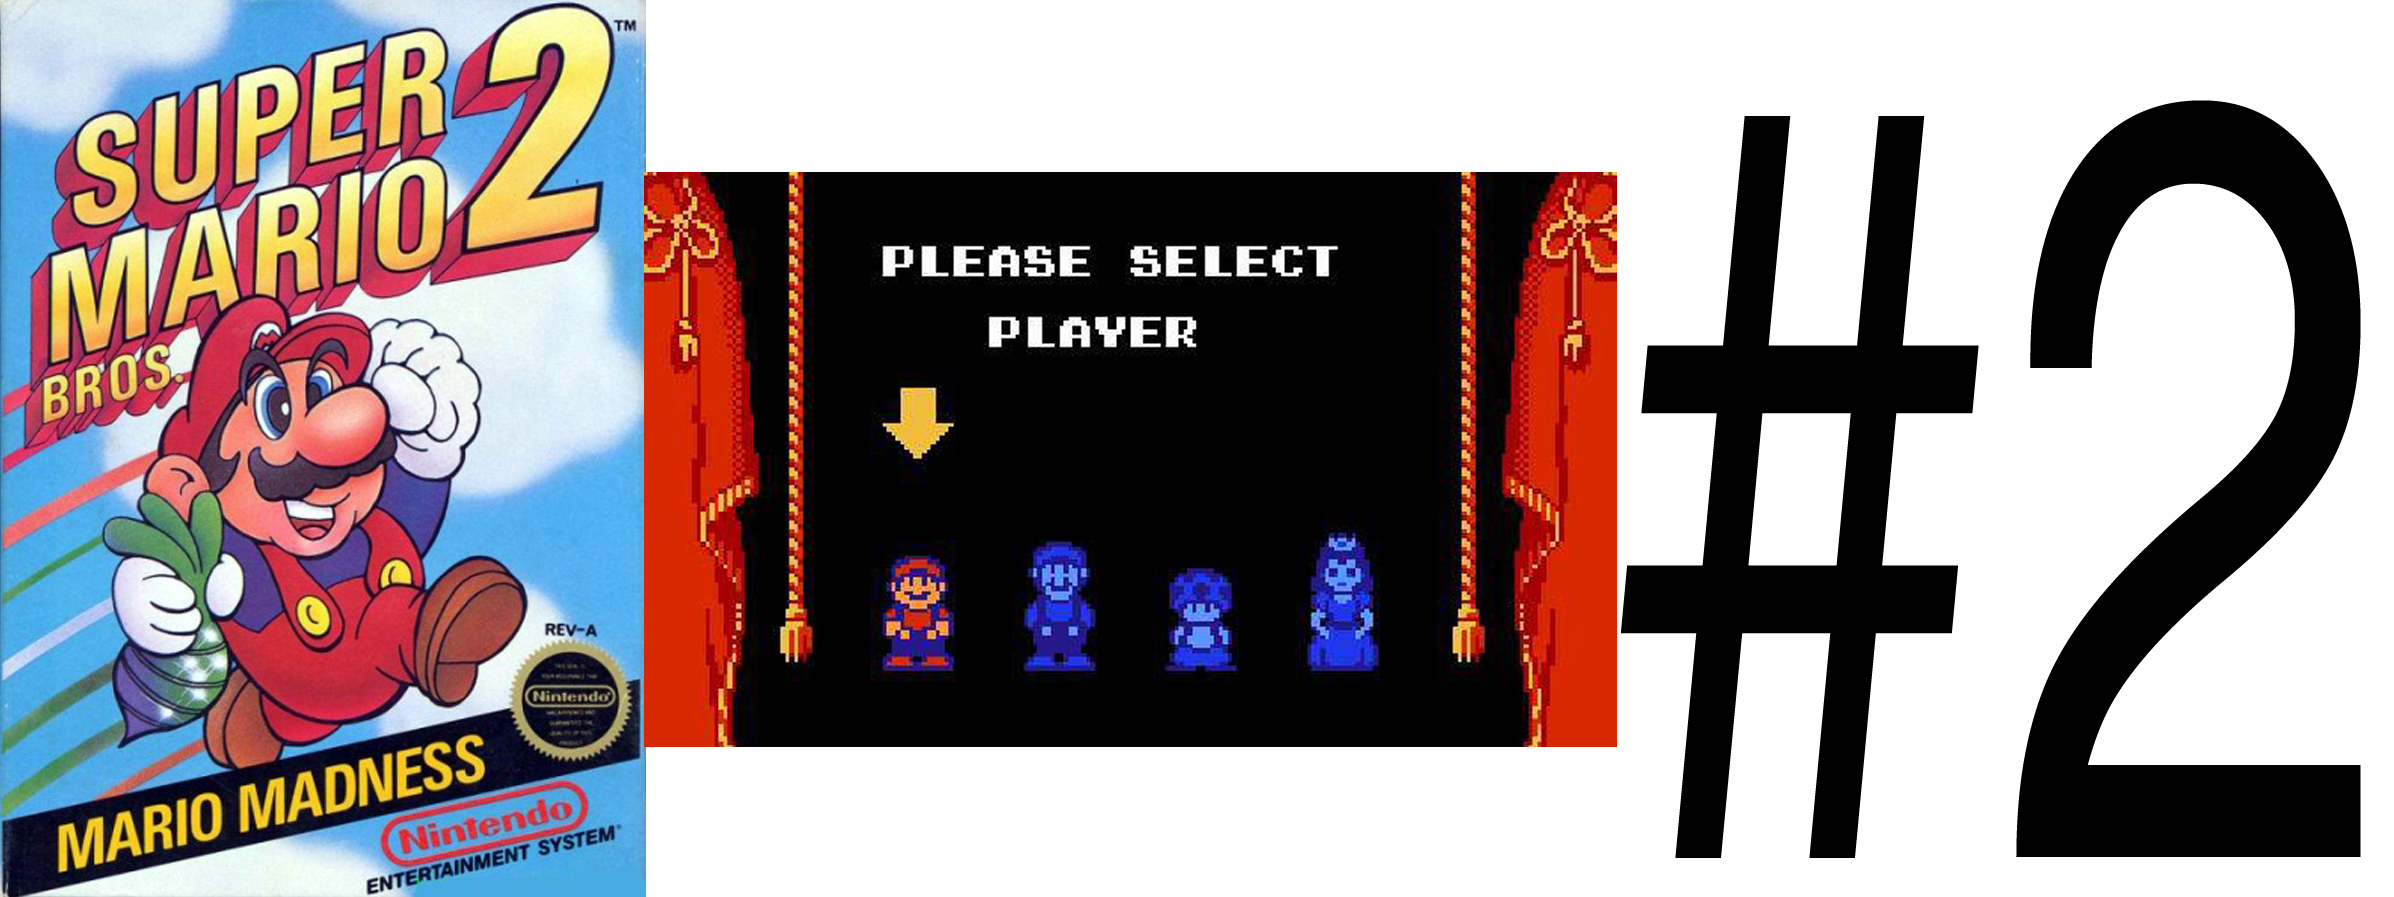 Link to the Past: Super Mario |